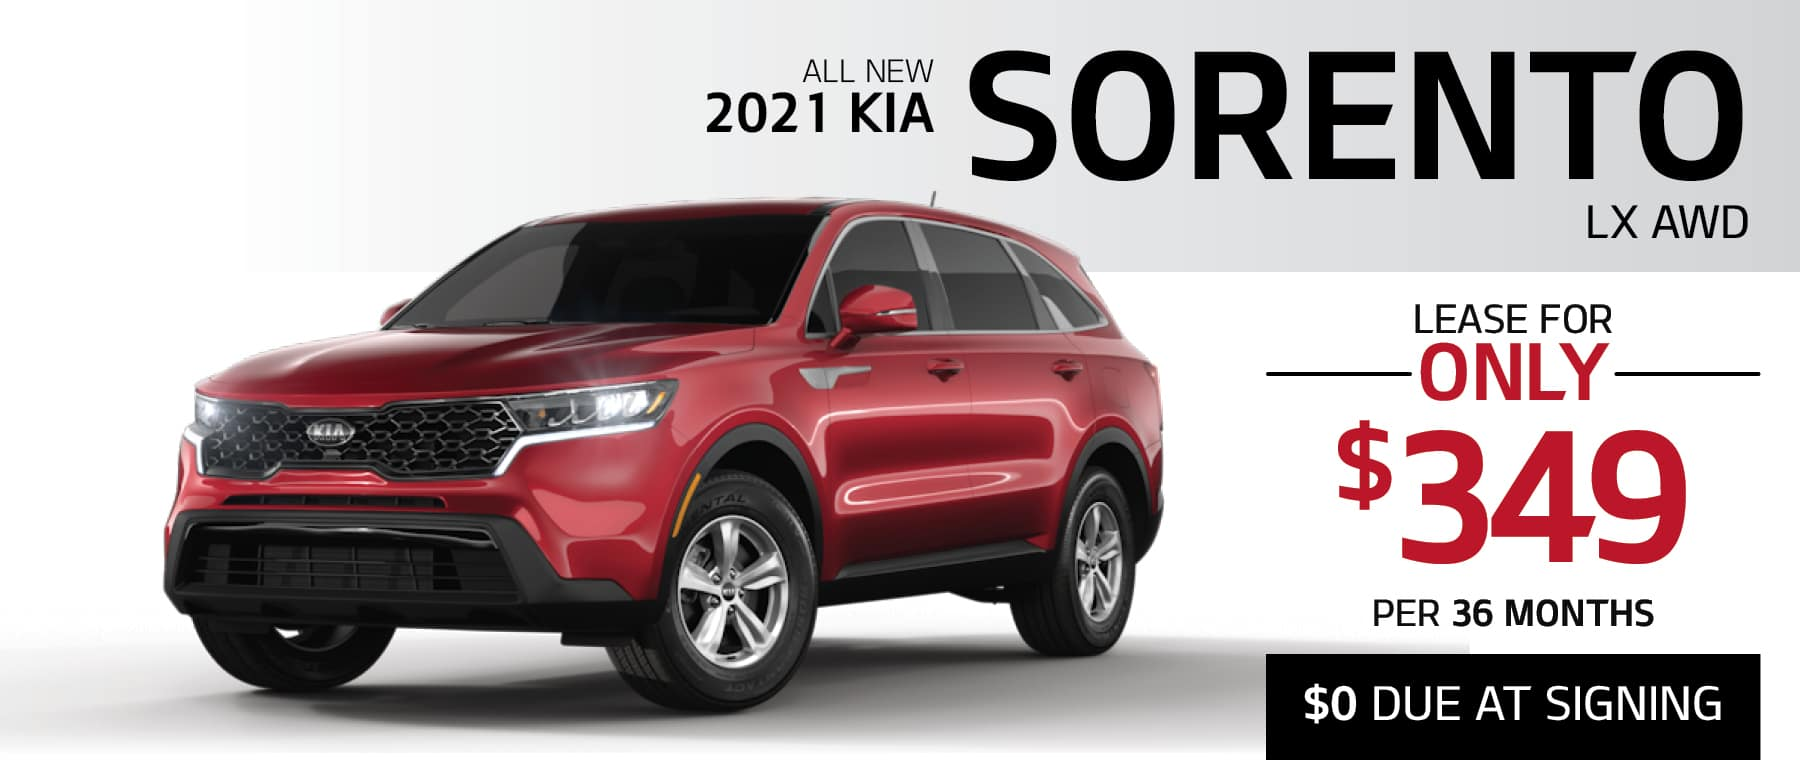 2021 Kia Sorento LX lease for $349 per month with $0 Due at Signing at Smail Kia